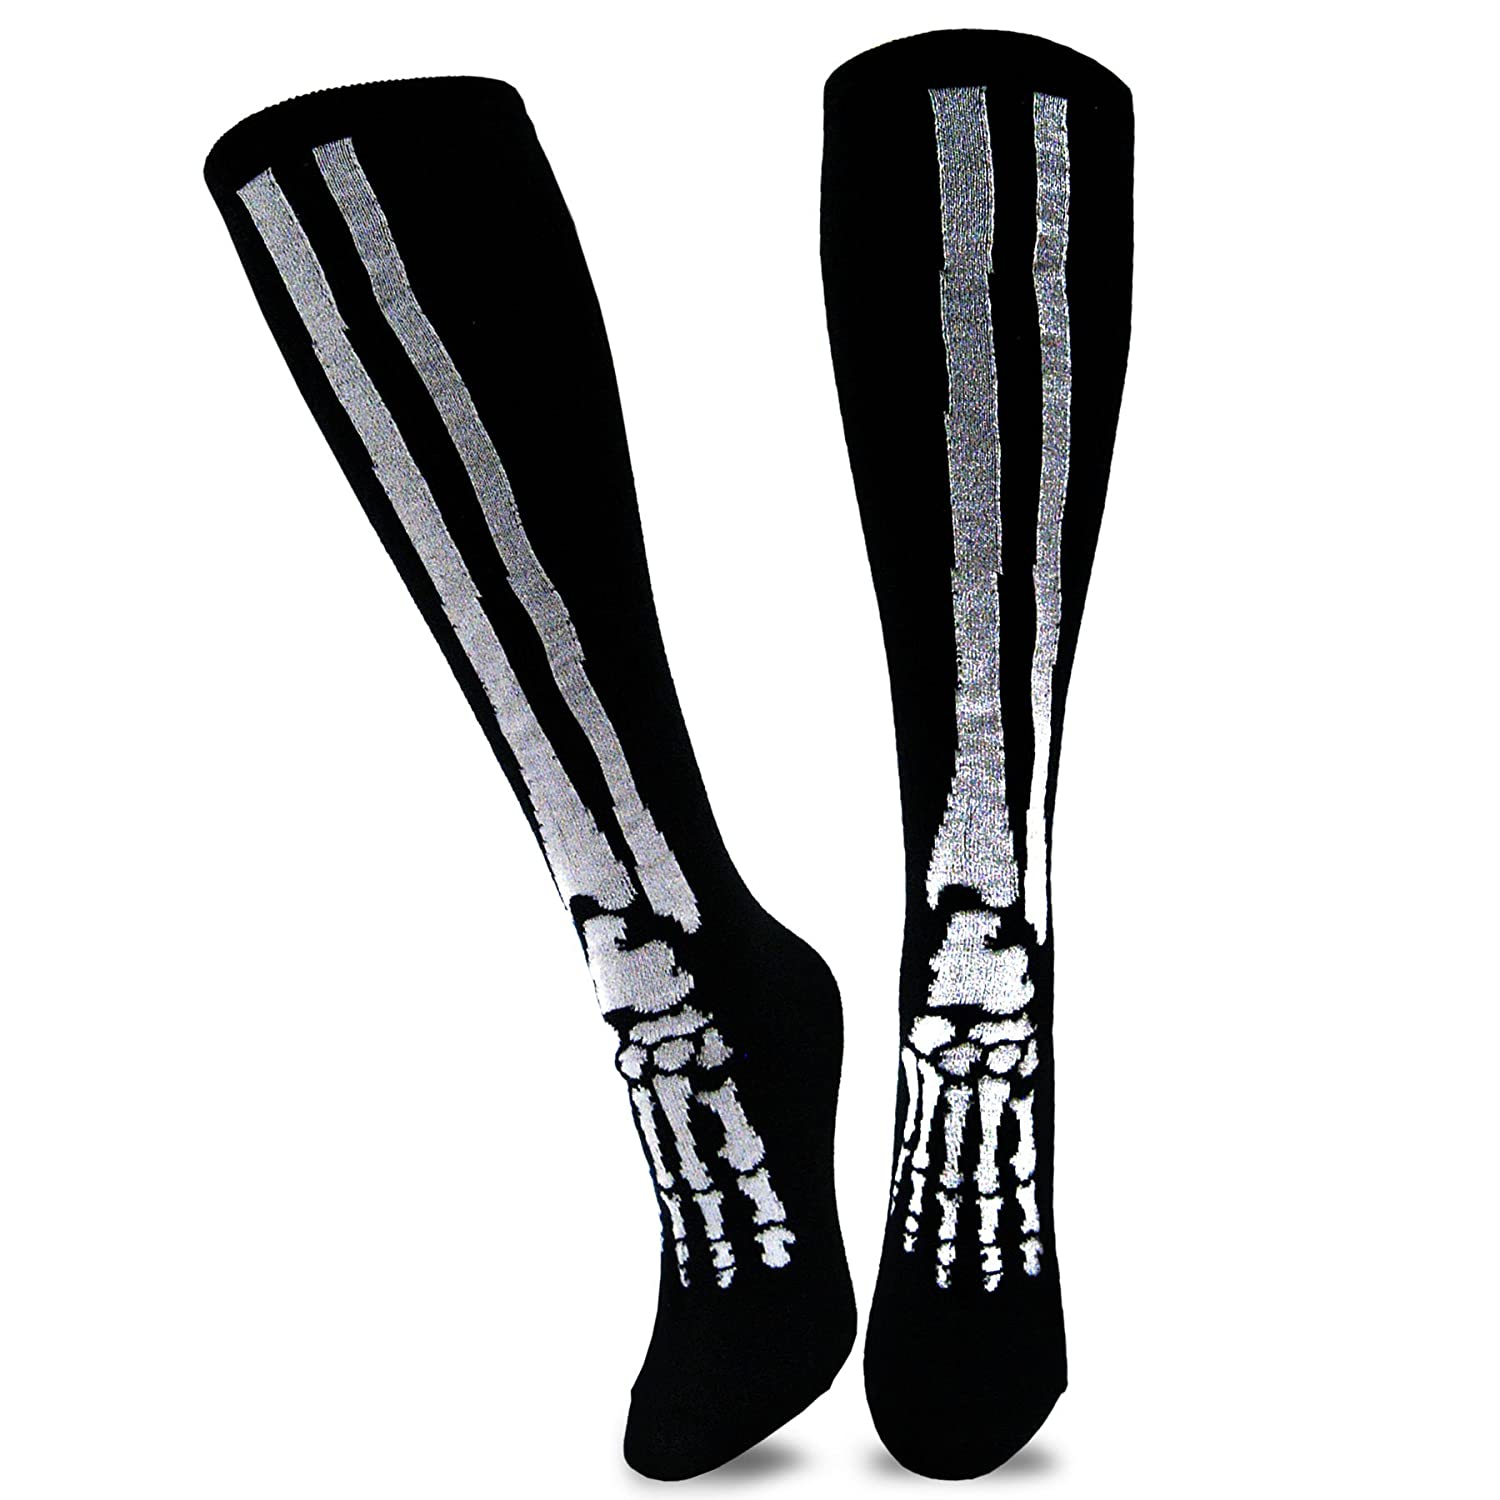 TeeHee Novelty Young Men Halloween Skeleton Fun Knee High Socks Knee High)